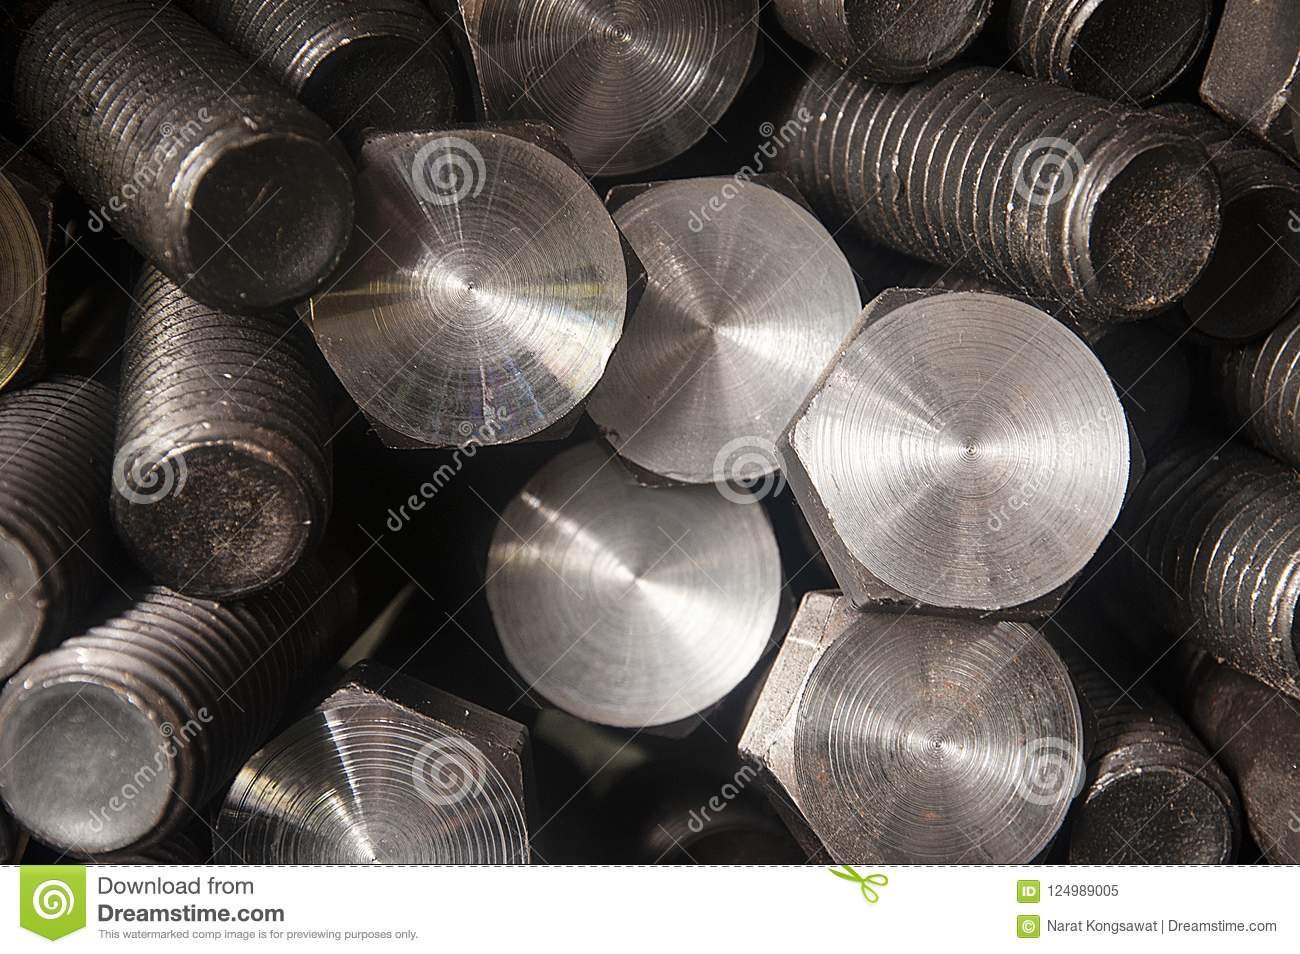 Bolt and nut production